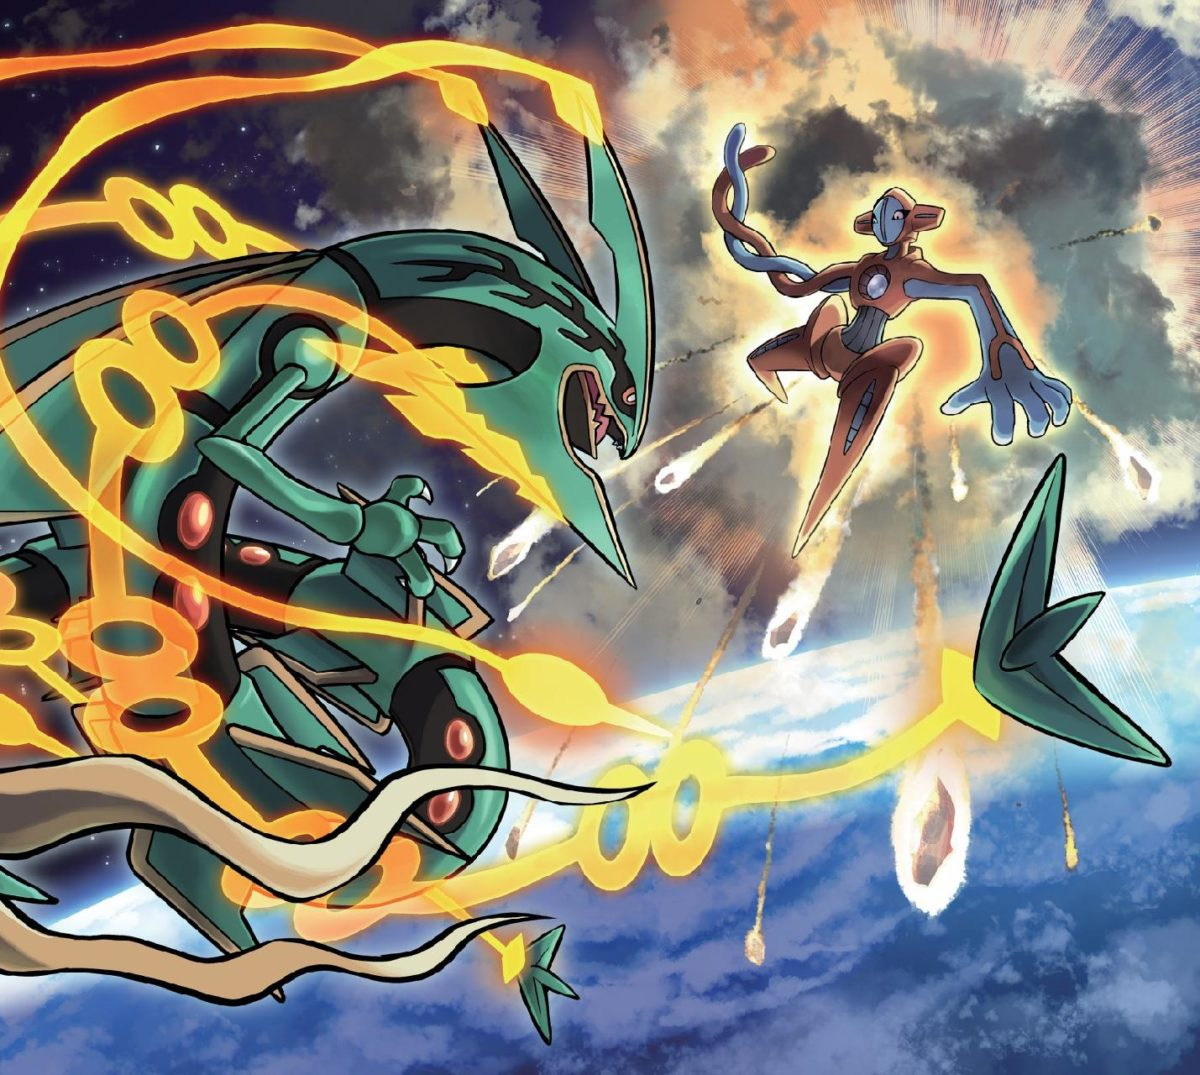 Rayquaza vs Deoxys wallpaper by JohnnyAmezcua • ZEDGE™